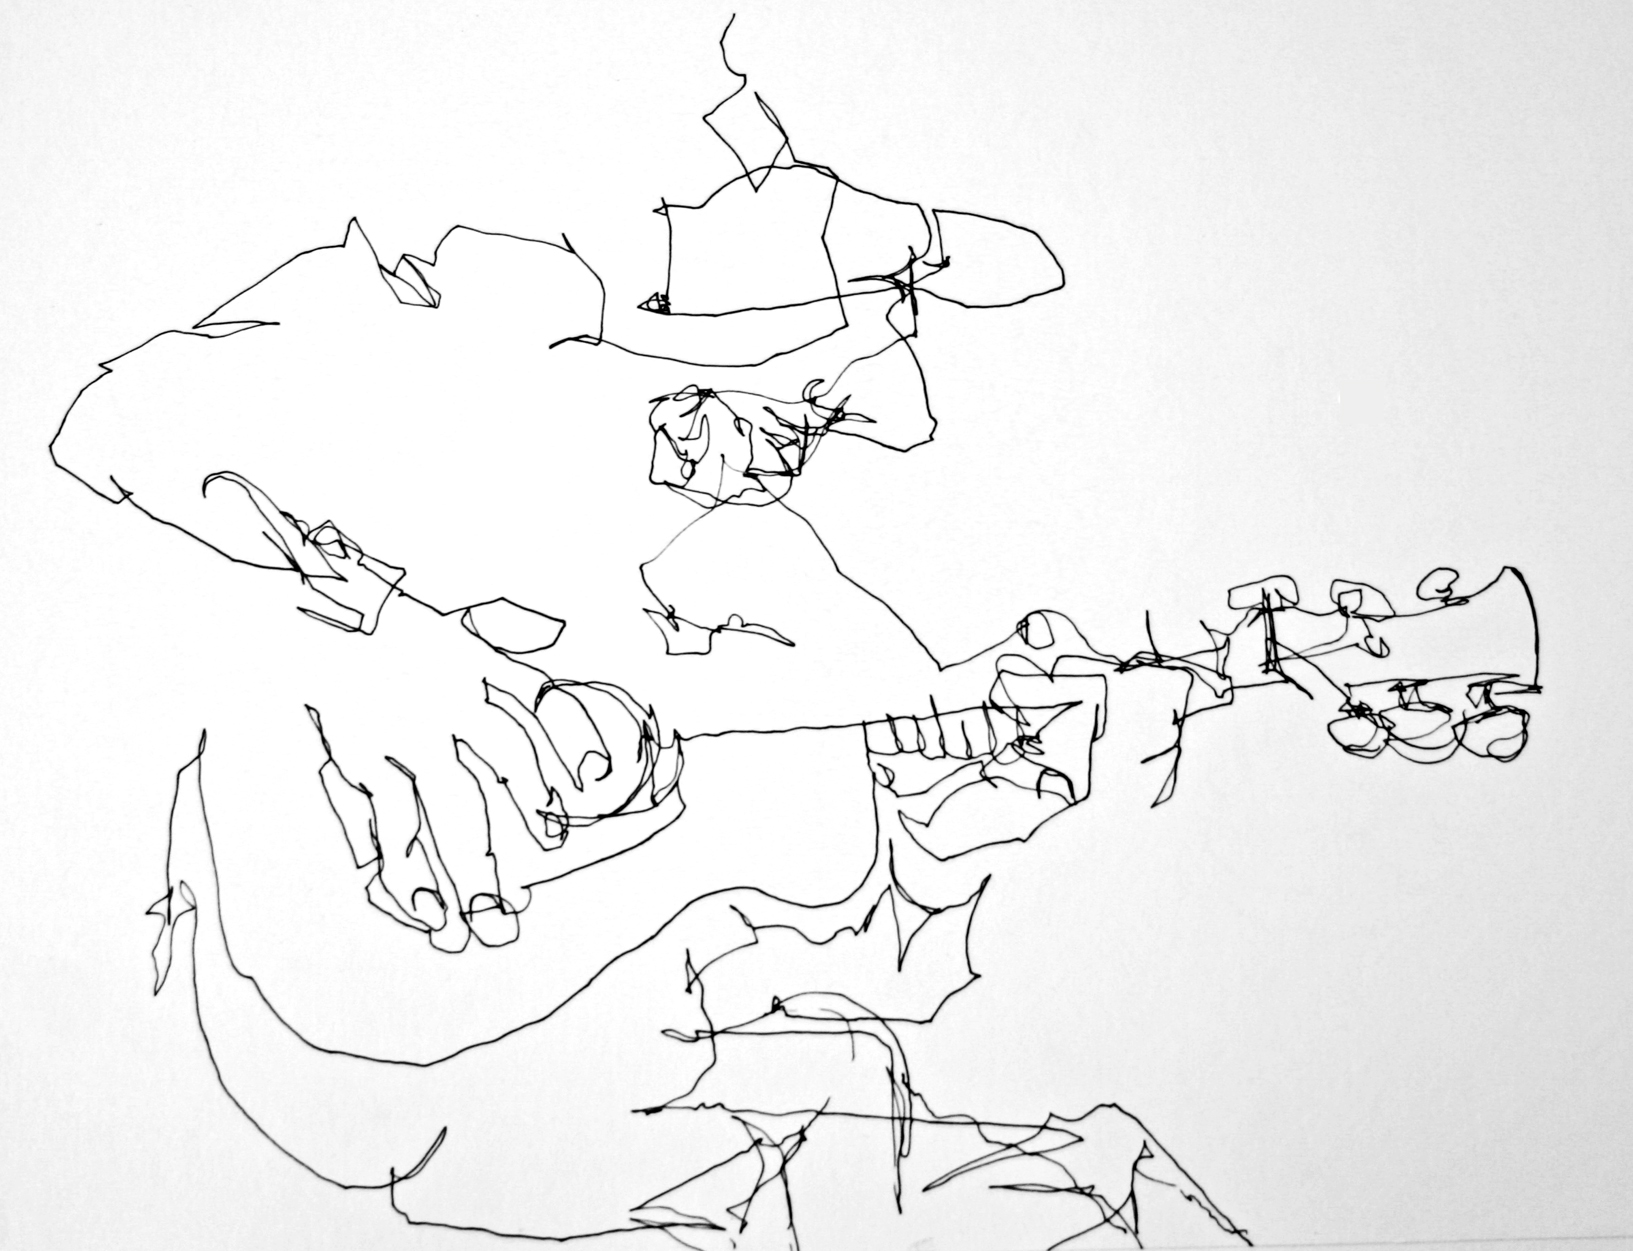 Continuous Contour Line Drawing : Contour drawing youth are awesome